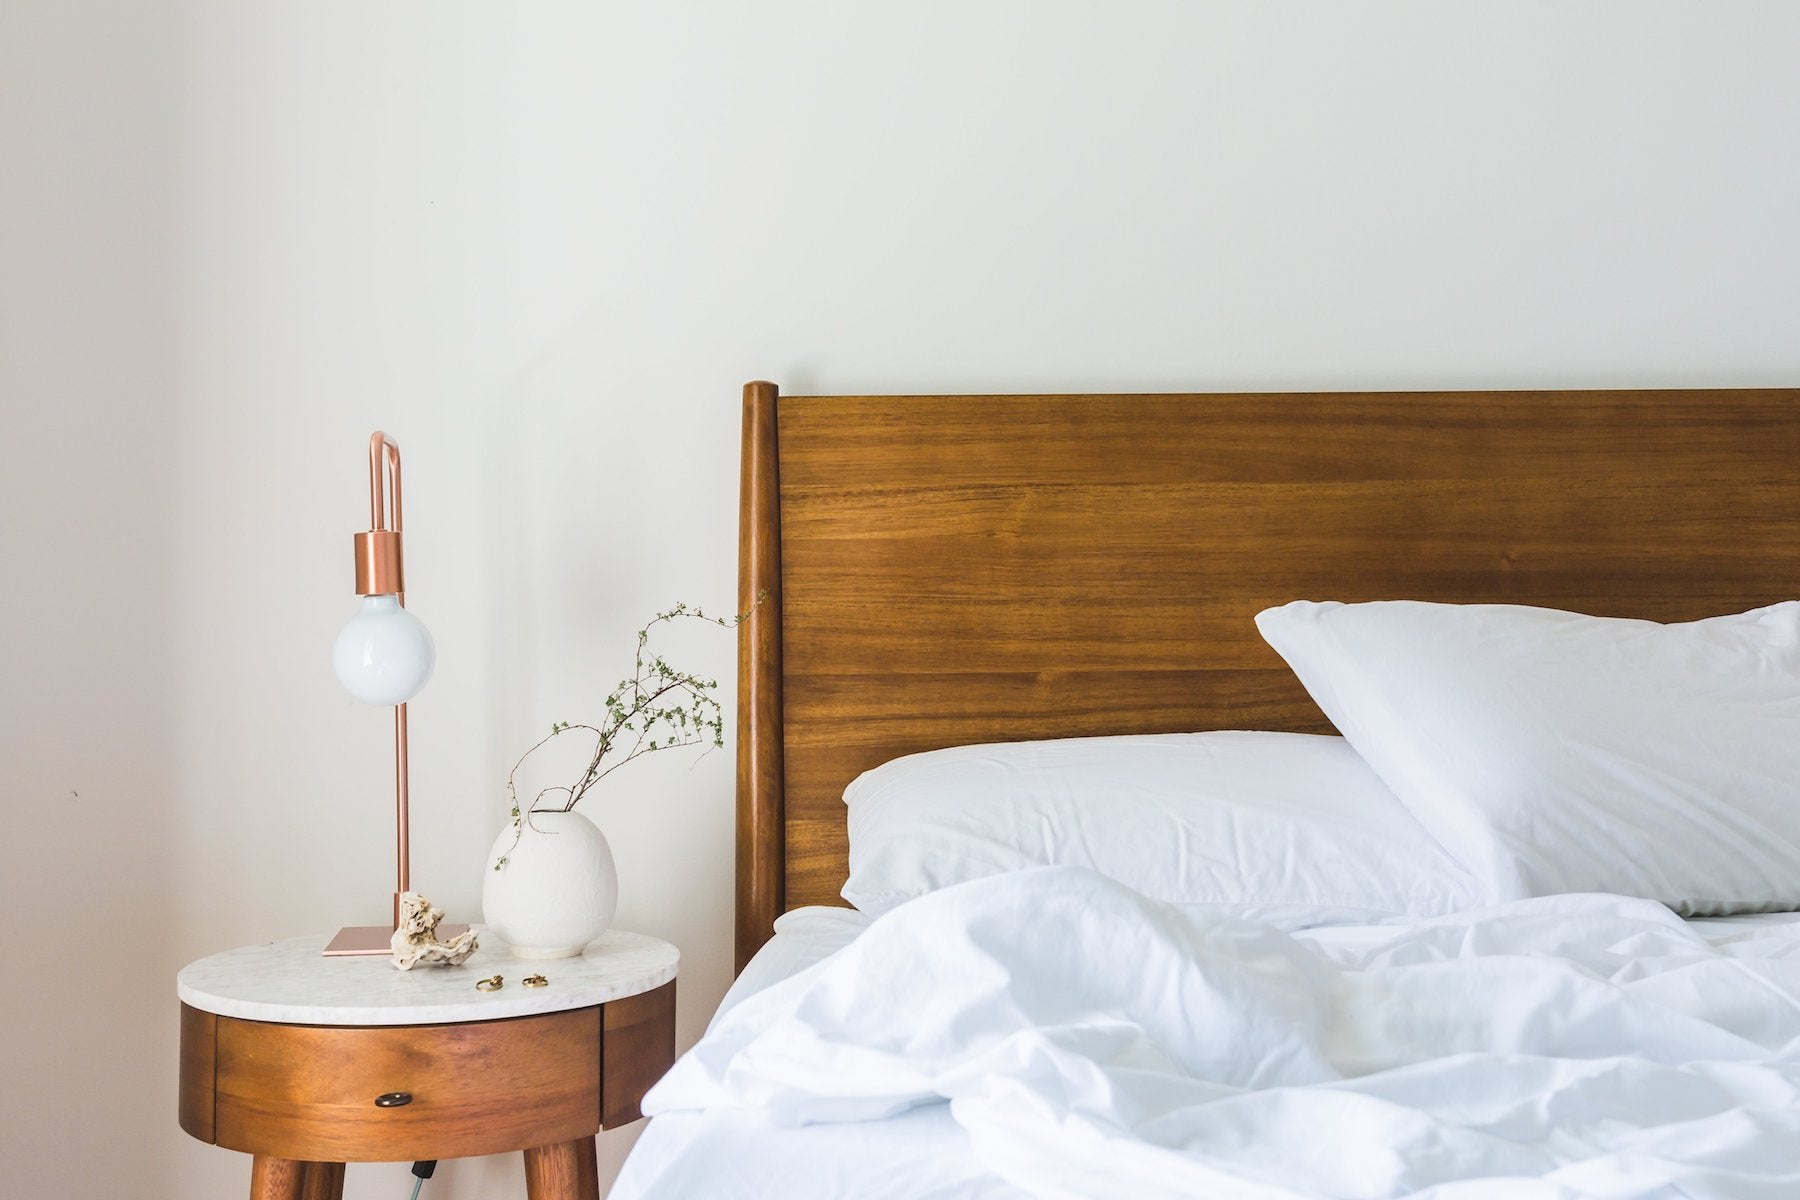 Five Bedroom Essentials for a Sound Sleep